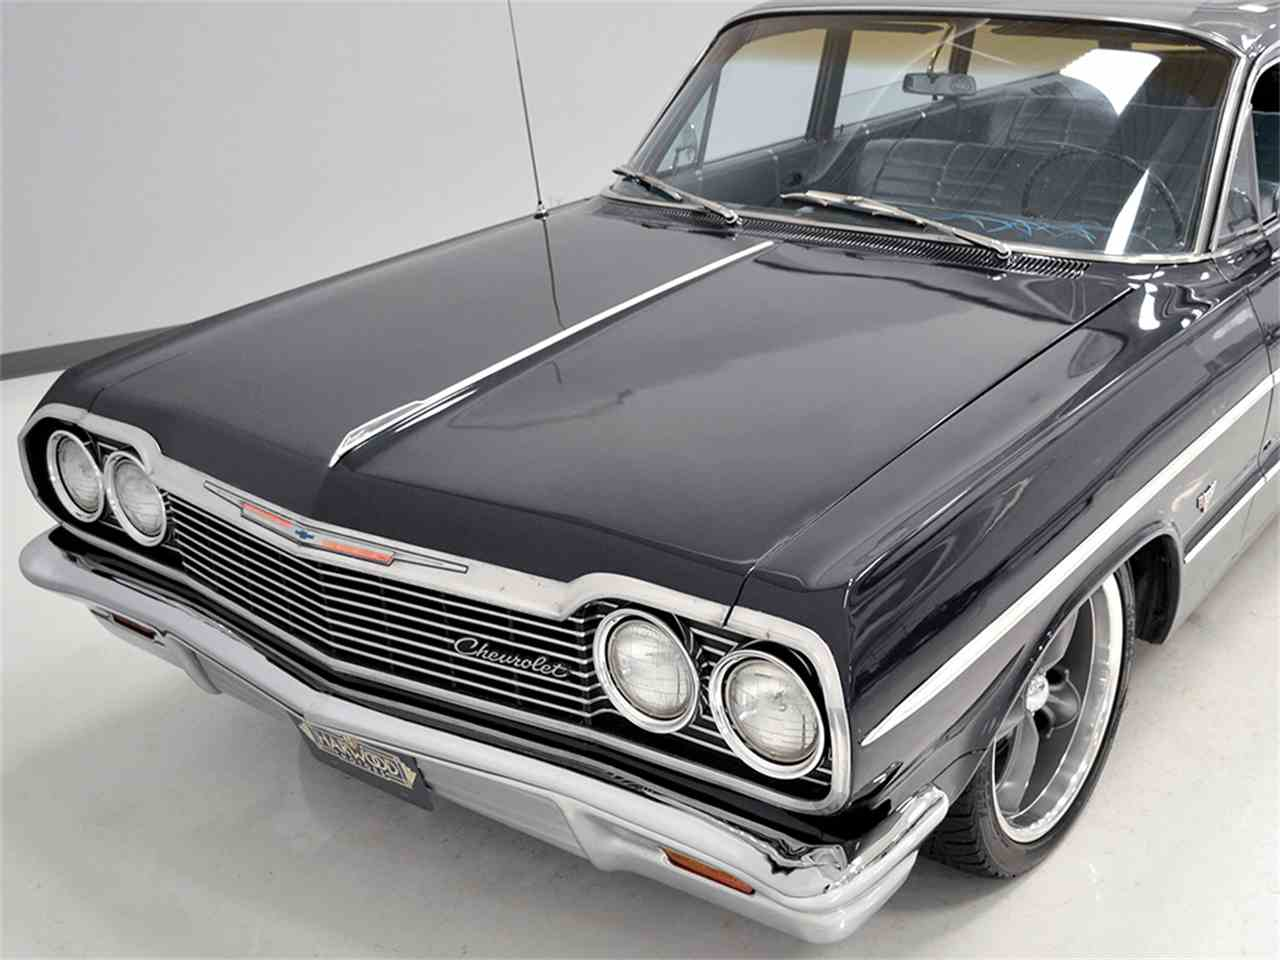 Large Picture of '64 Chevrolet Impala - $22,900.00 Offered by Harwood Motors, LTD. - LEX8